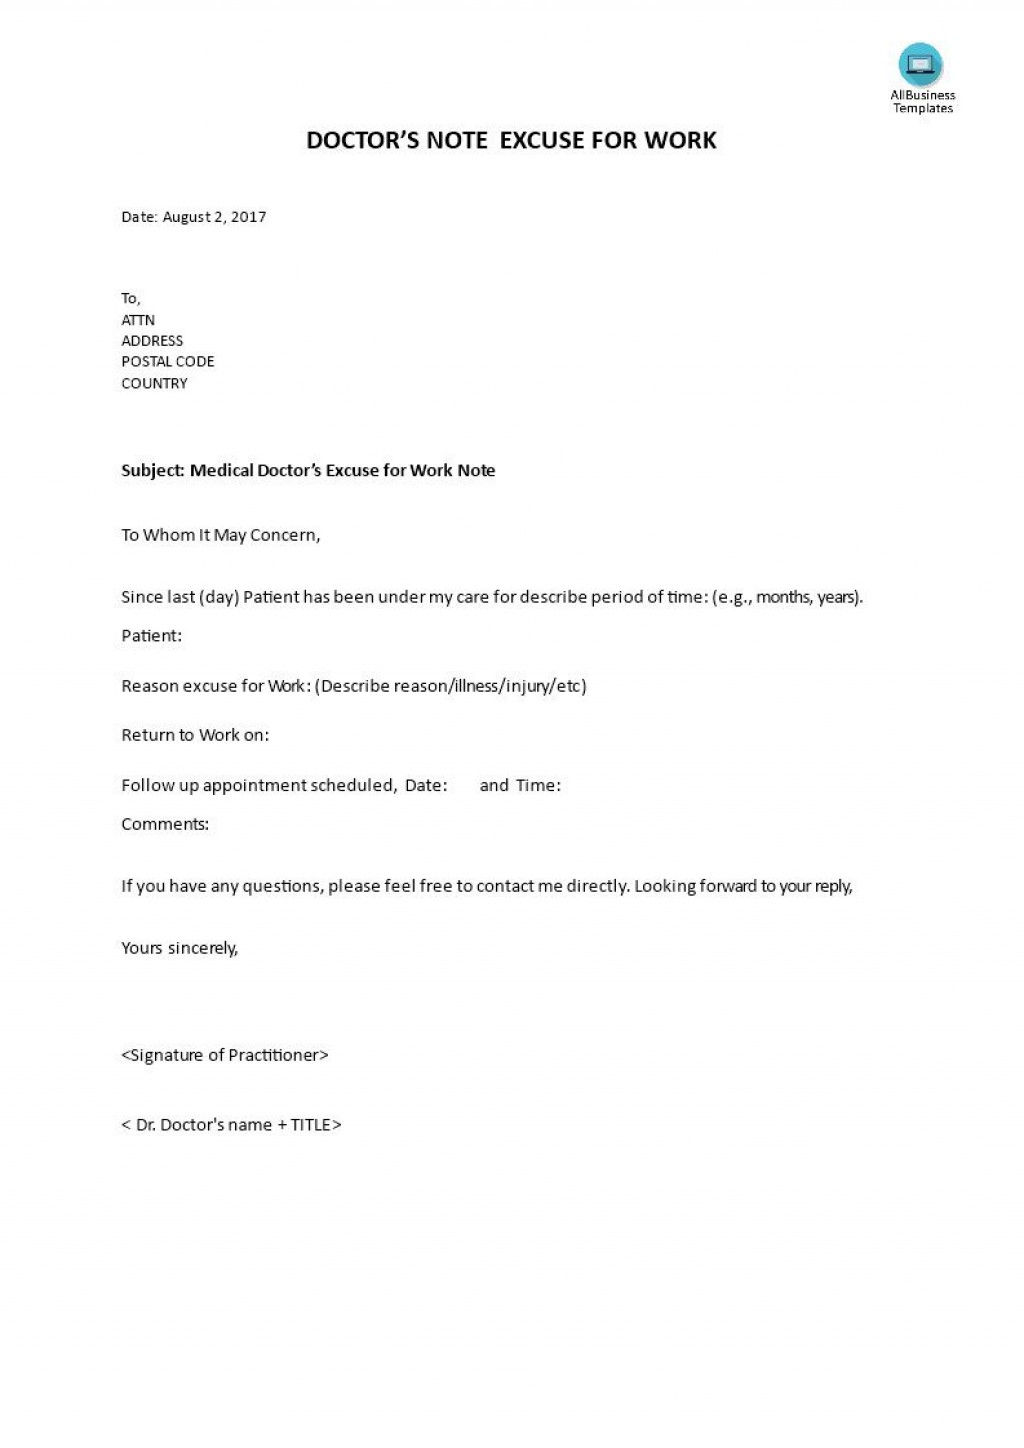 001 Shocking Doctor Note For Work Template High Definition  Doctor' Missing Excuse PdfLarge